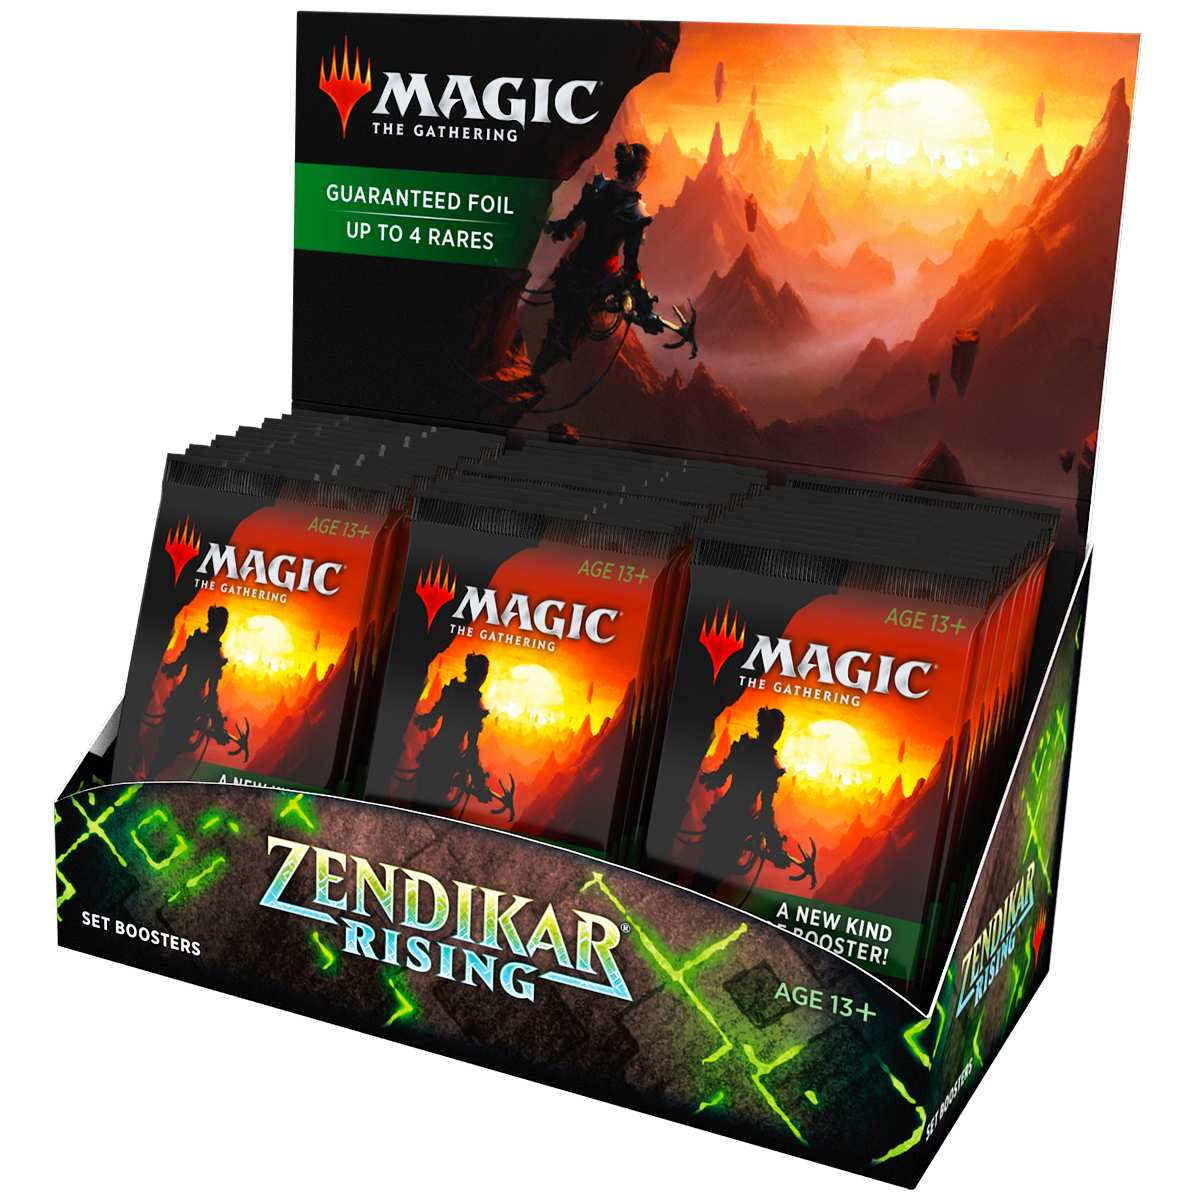 Magic Box Set Booster Zendikar Rising